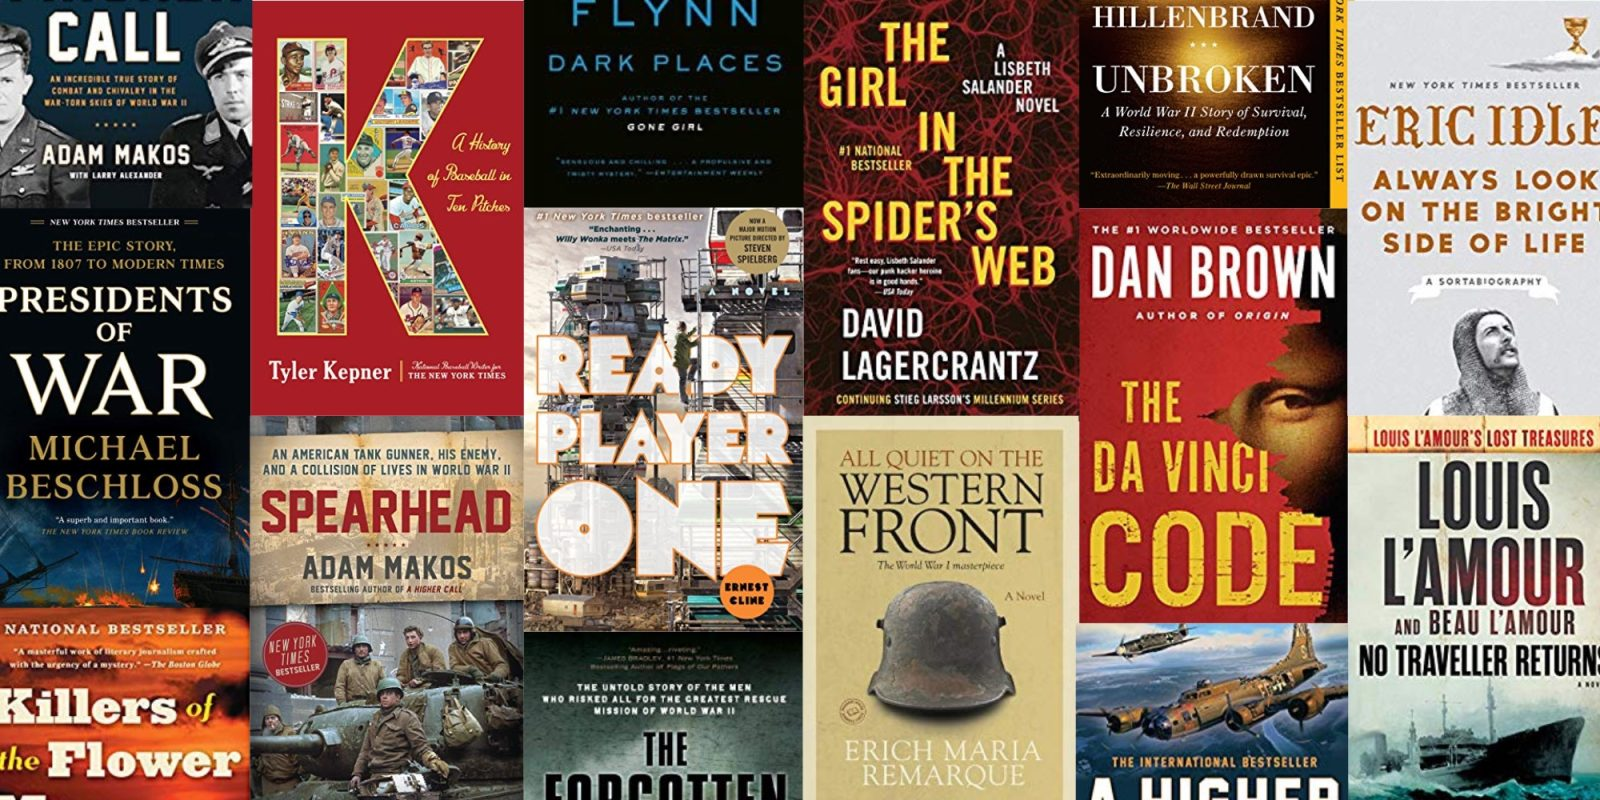 Amazon's Gold Box discounts top books for your Kindle reading list from $2